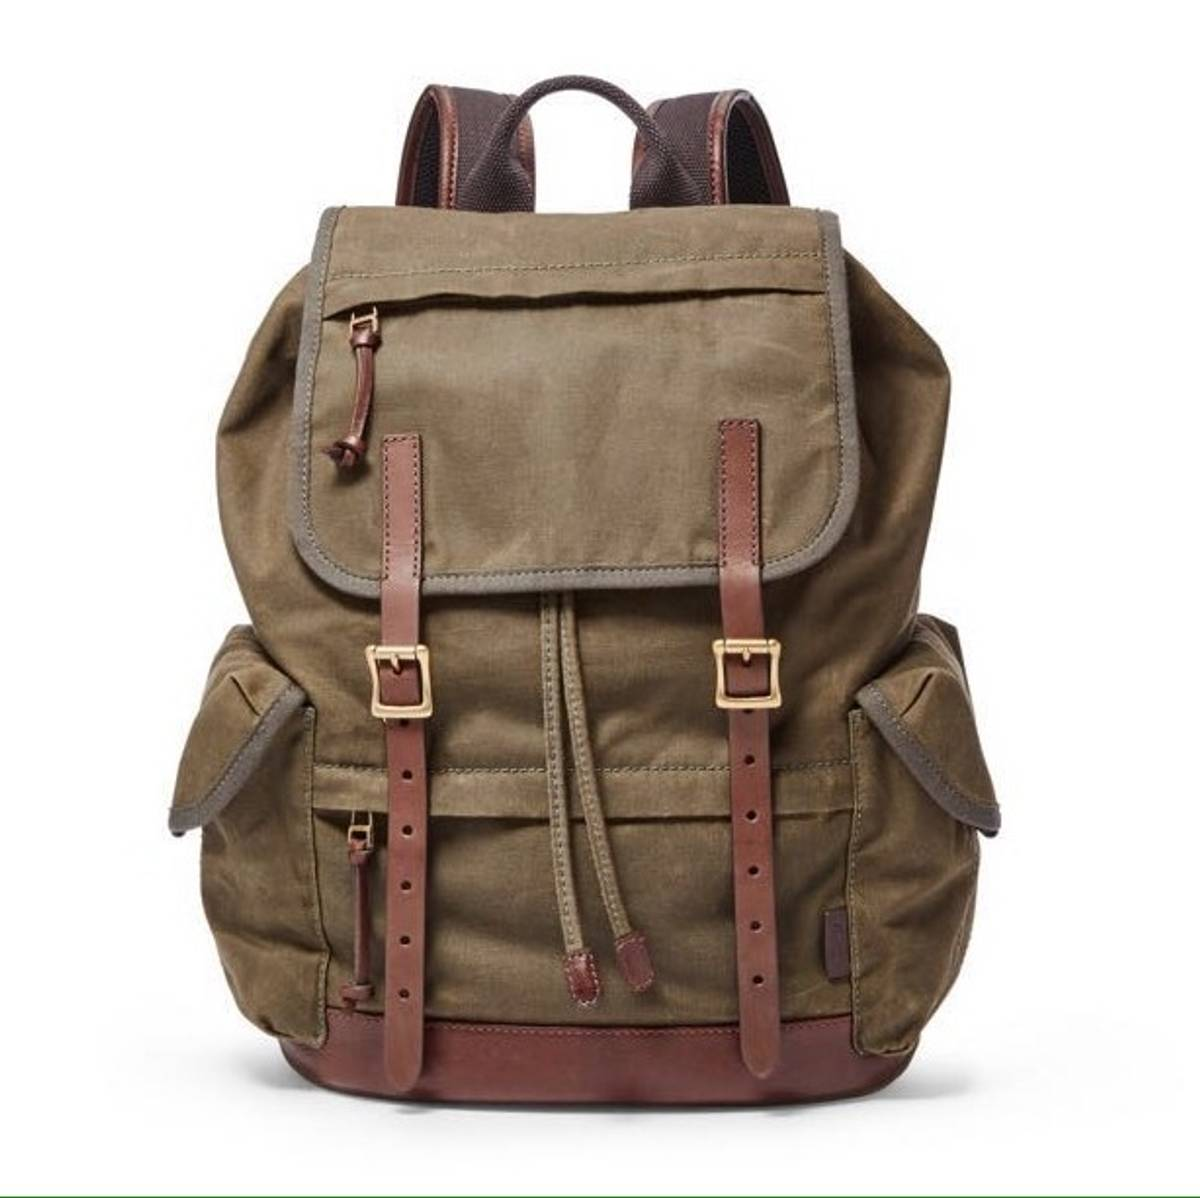 15c4827db6c0 Vintage Backpack Vintage Fossil Military Not Louis Vuitton Prada Size one  size - Bags   Luggage for Sale - Grailed